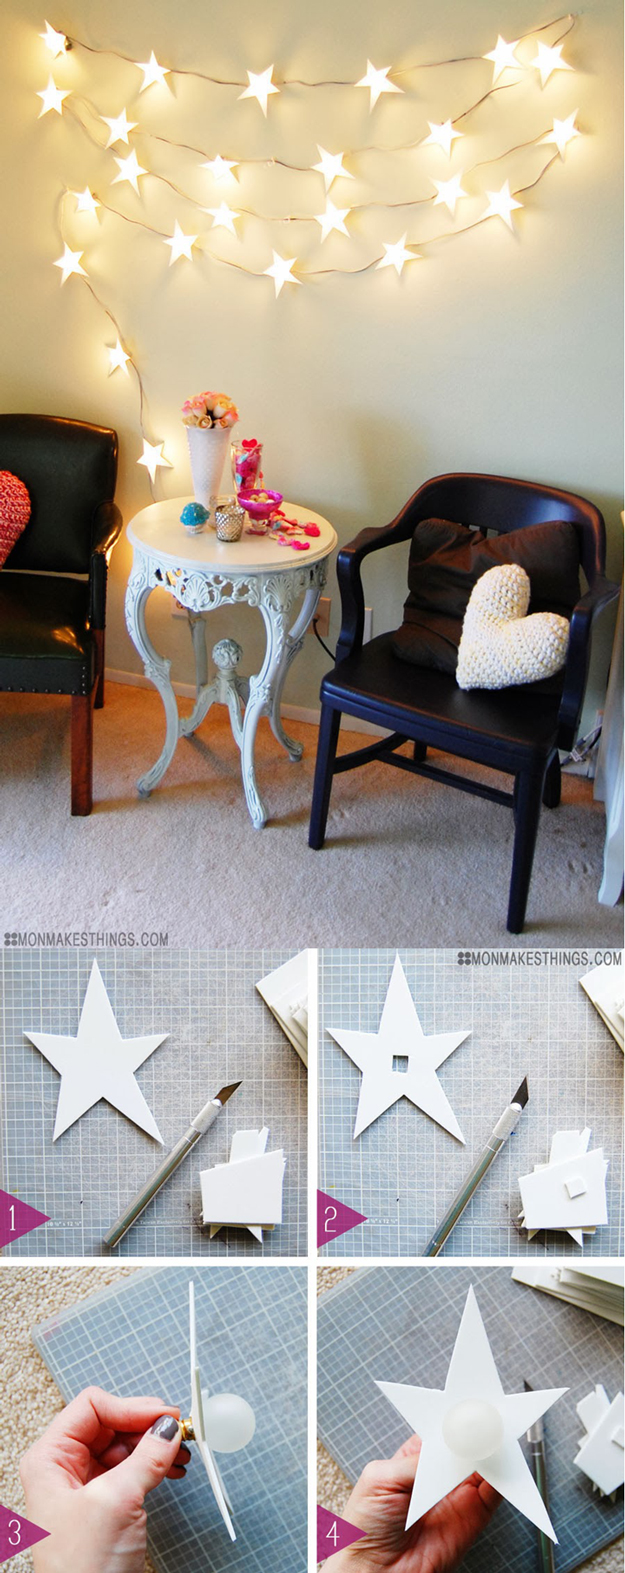 Home Decorating Ideas Diy Part - 42: String Light DIY Ideas For Cool Home Decor | Star Garland Christmas Light  DIY Are Fun